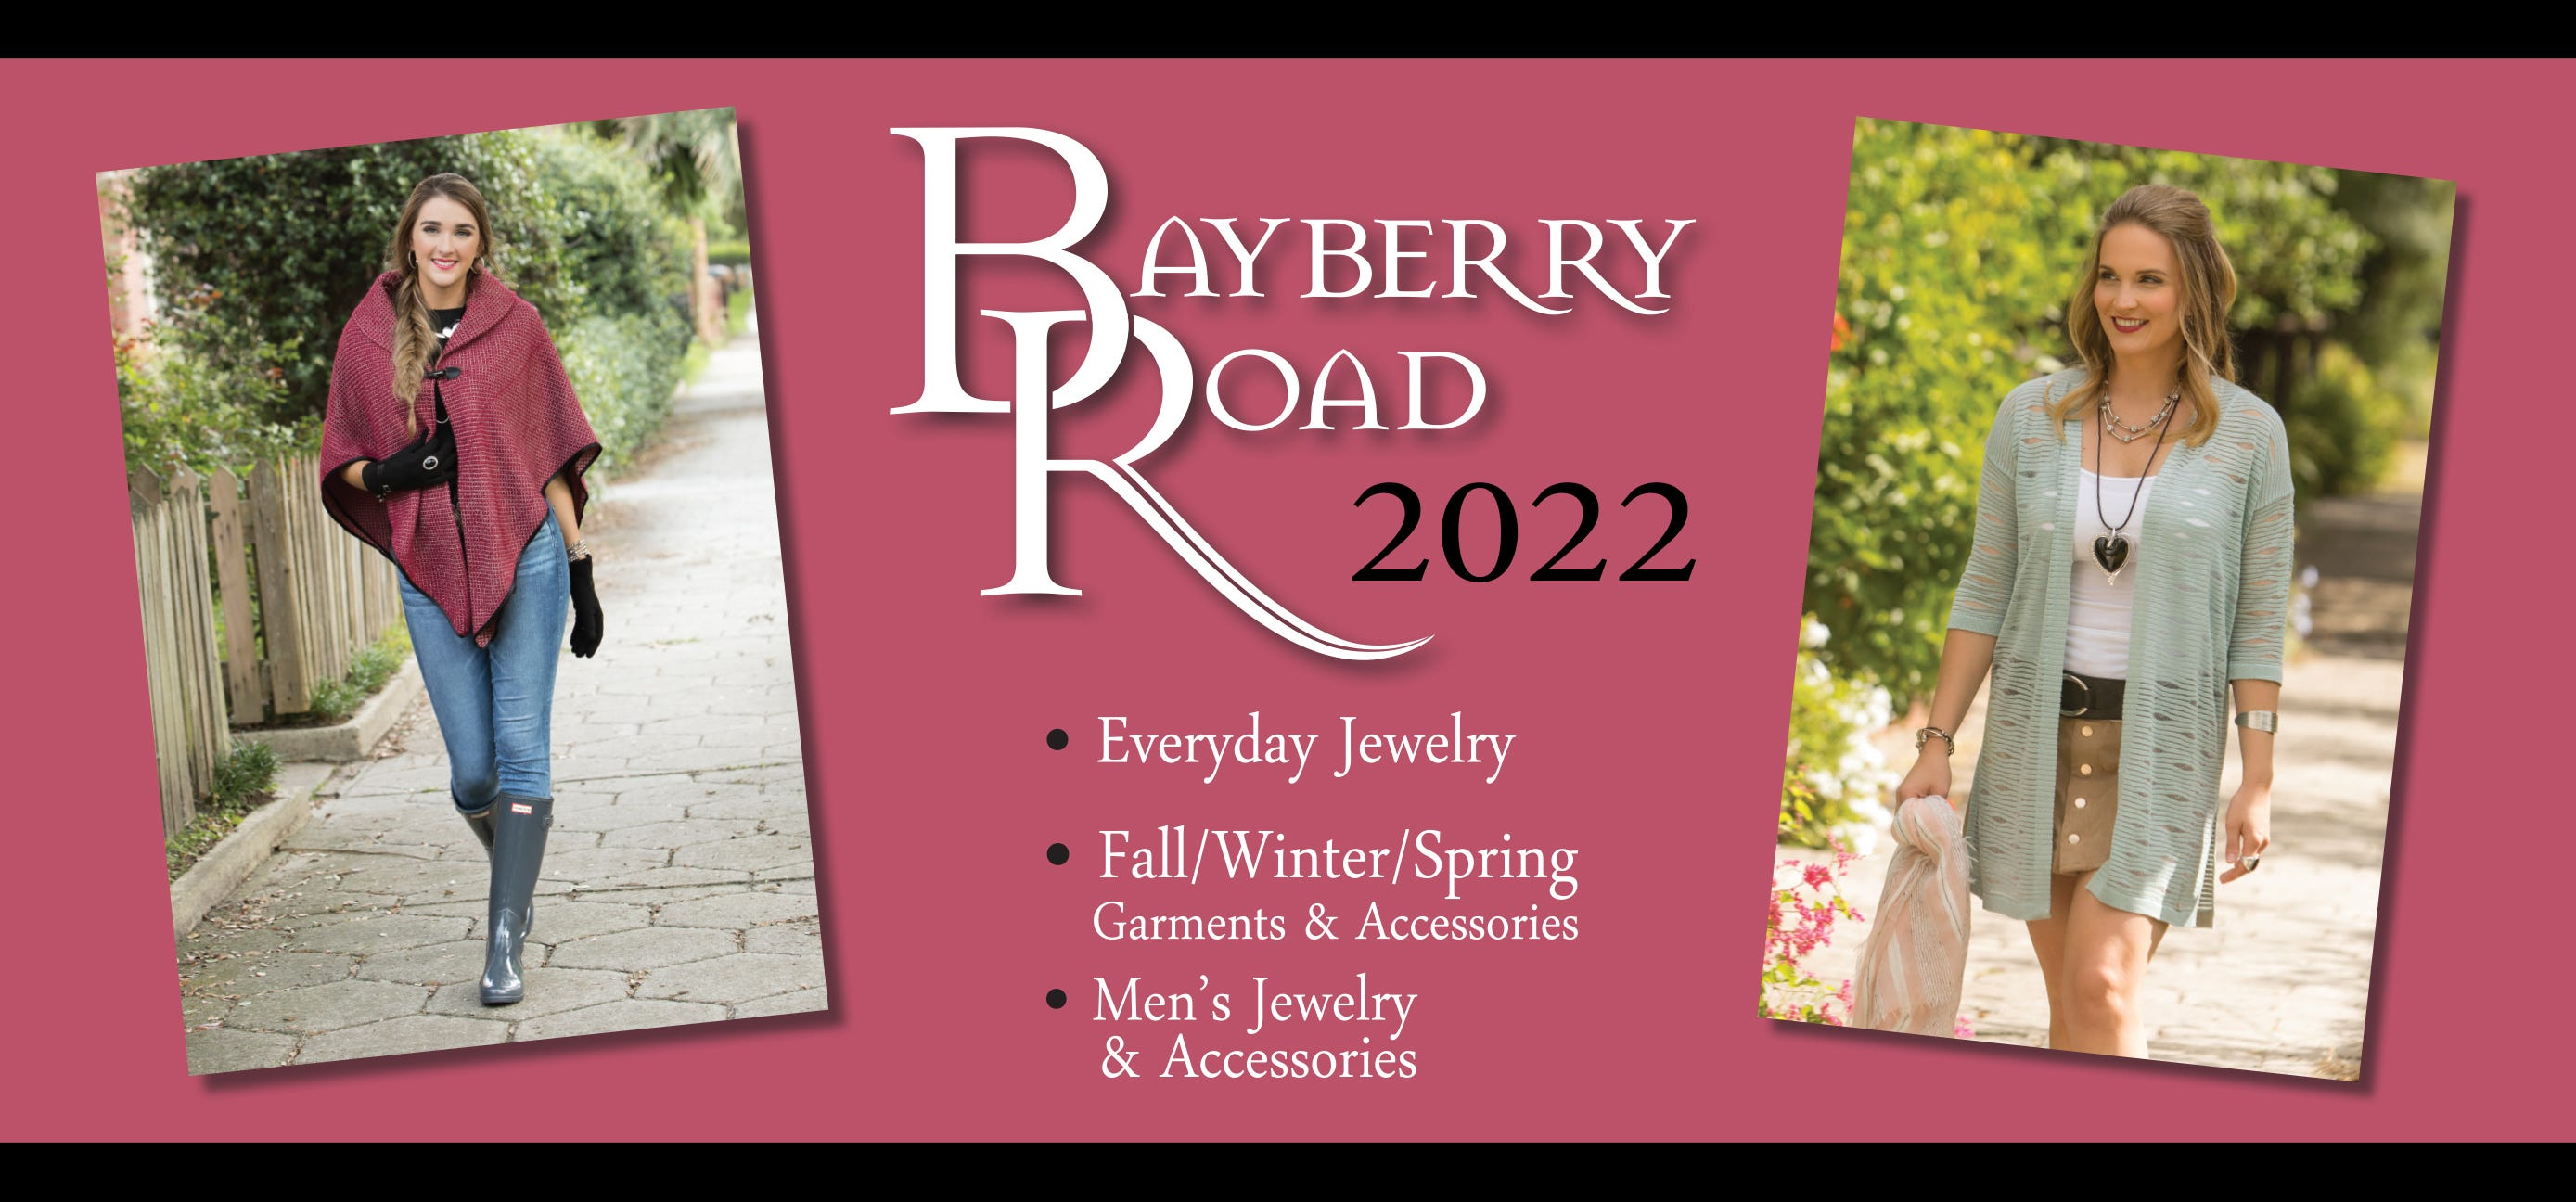 Bayberry Road 2022